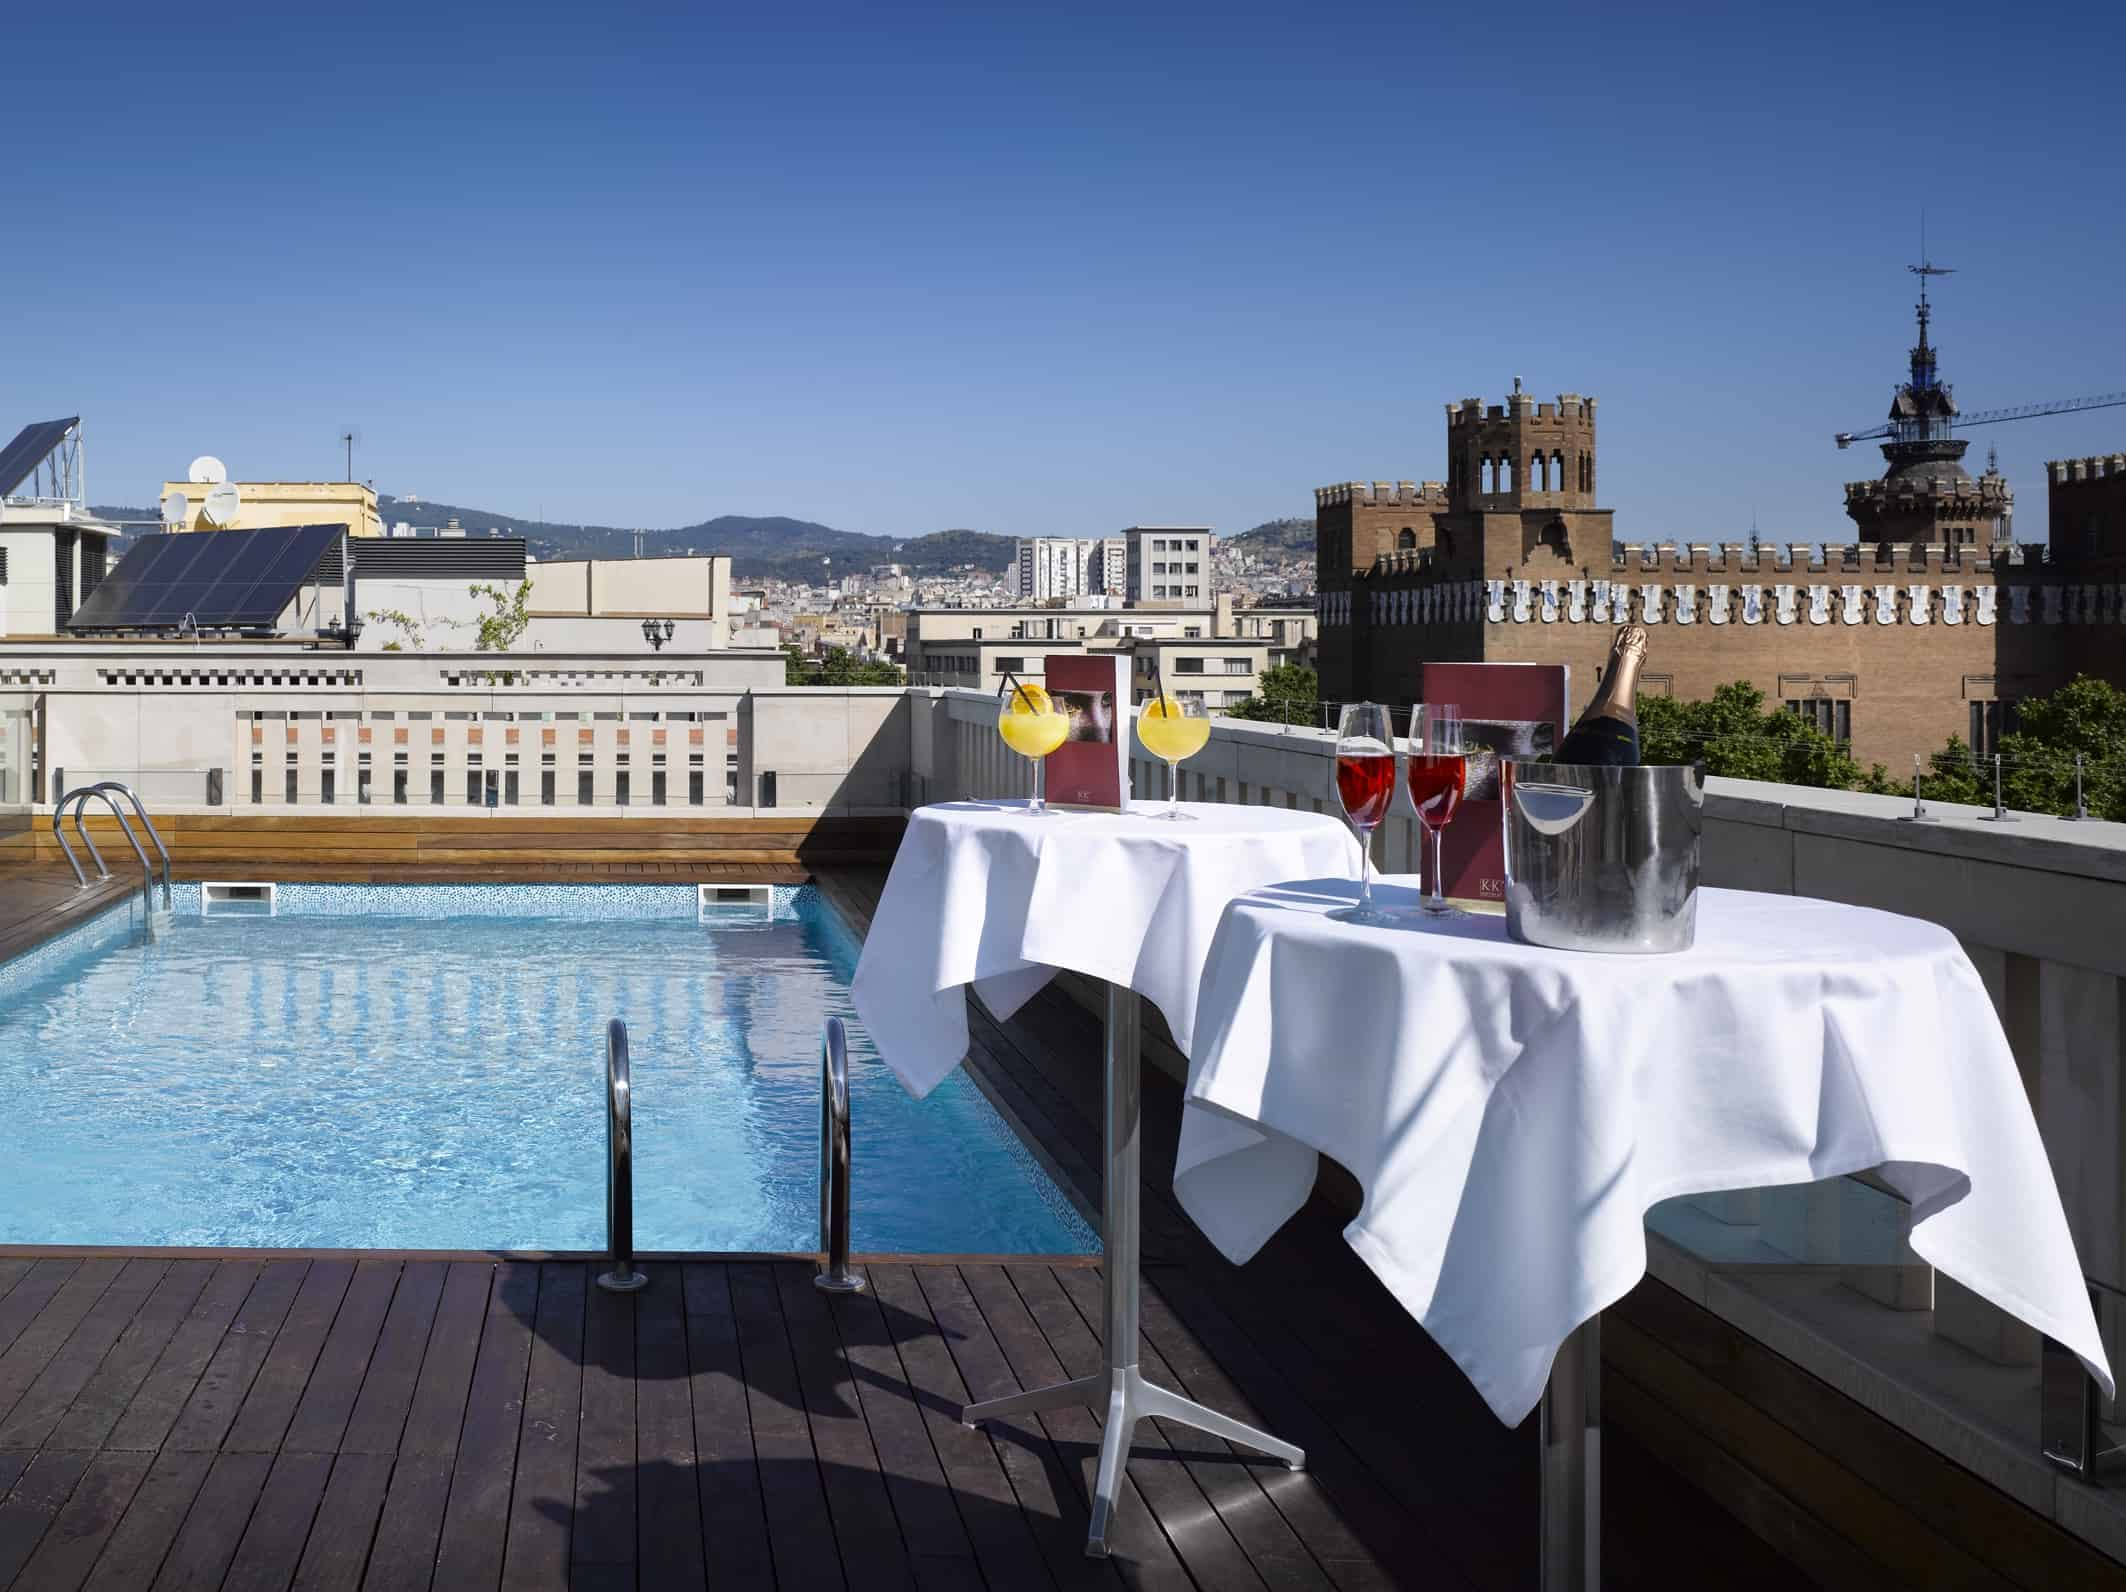 K+K Hotel Picasso - Terrace with pool